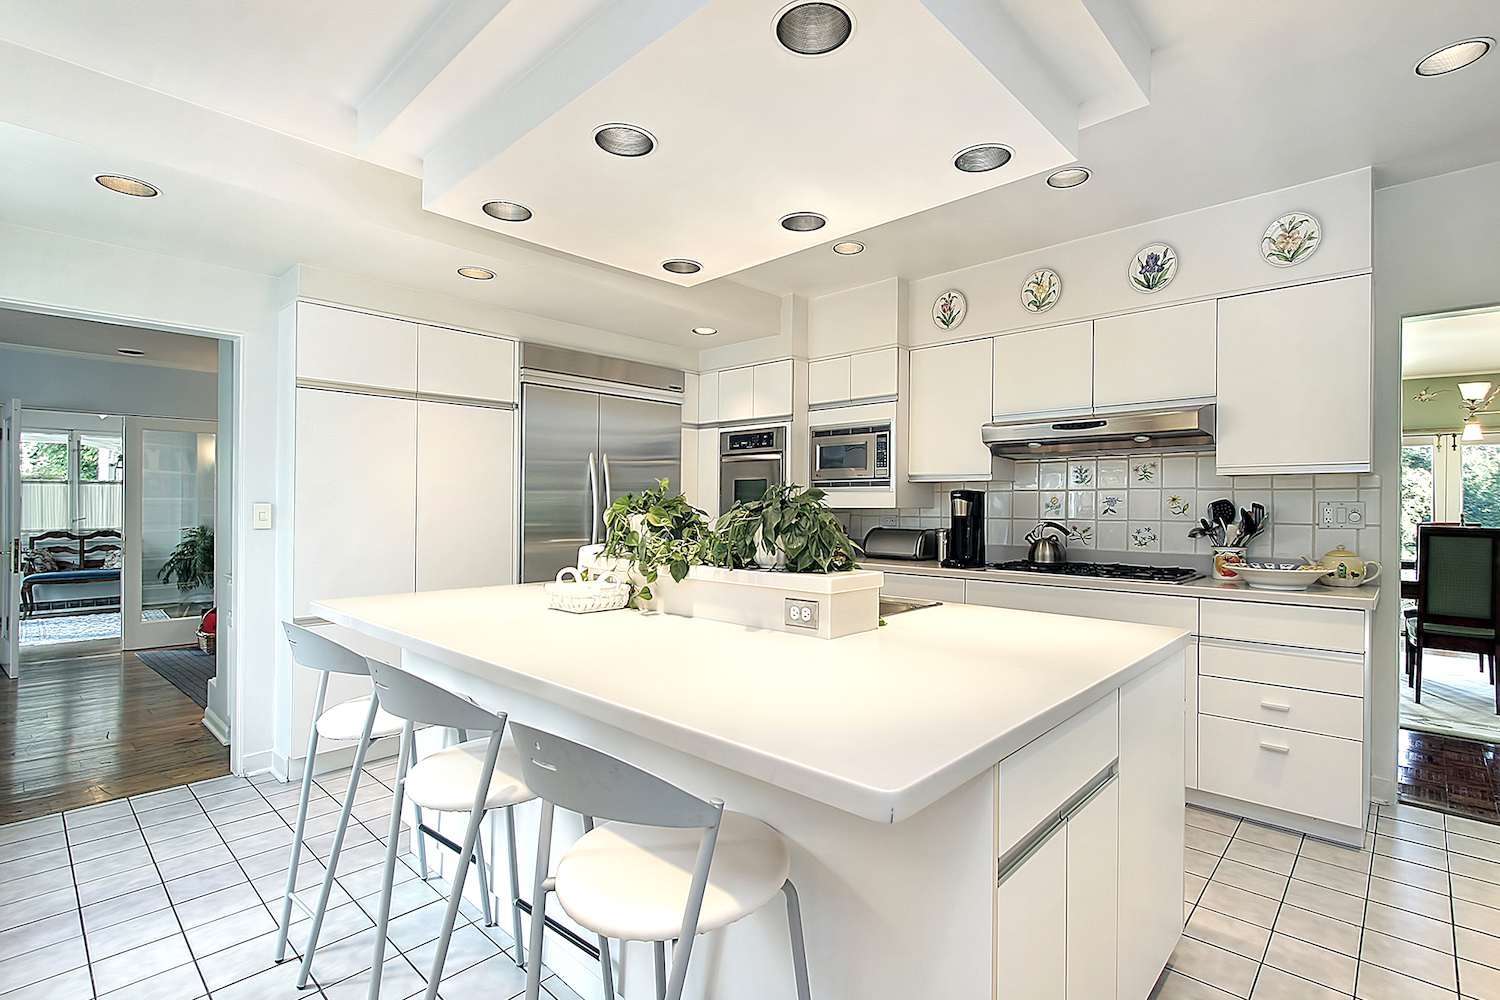 kitchen statuario out new products these countertops nustone quartz white countertop blog sample transformations check